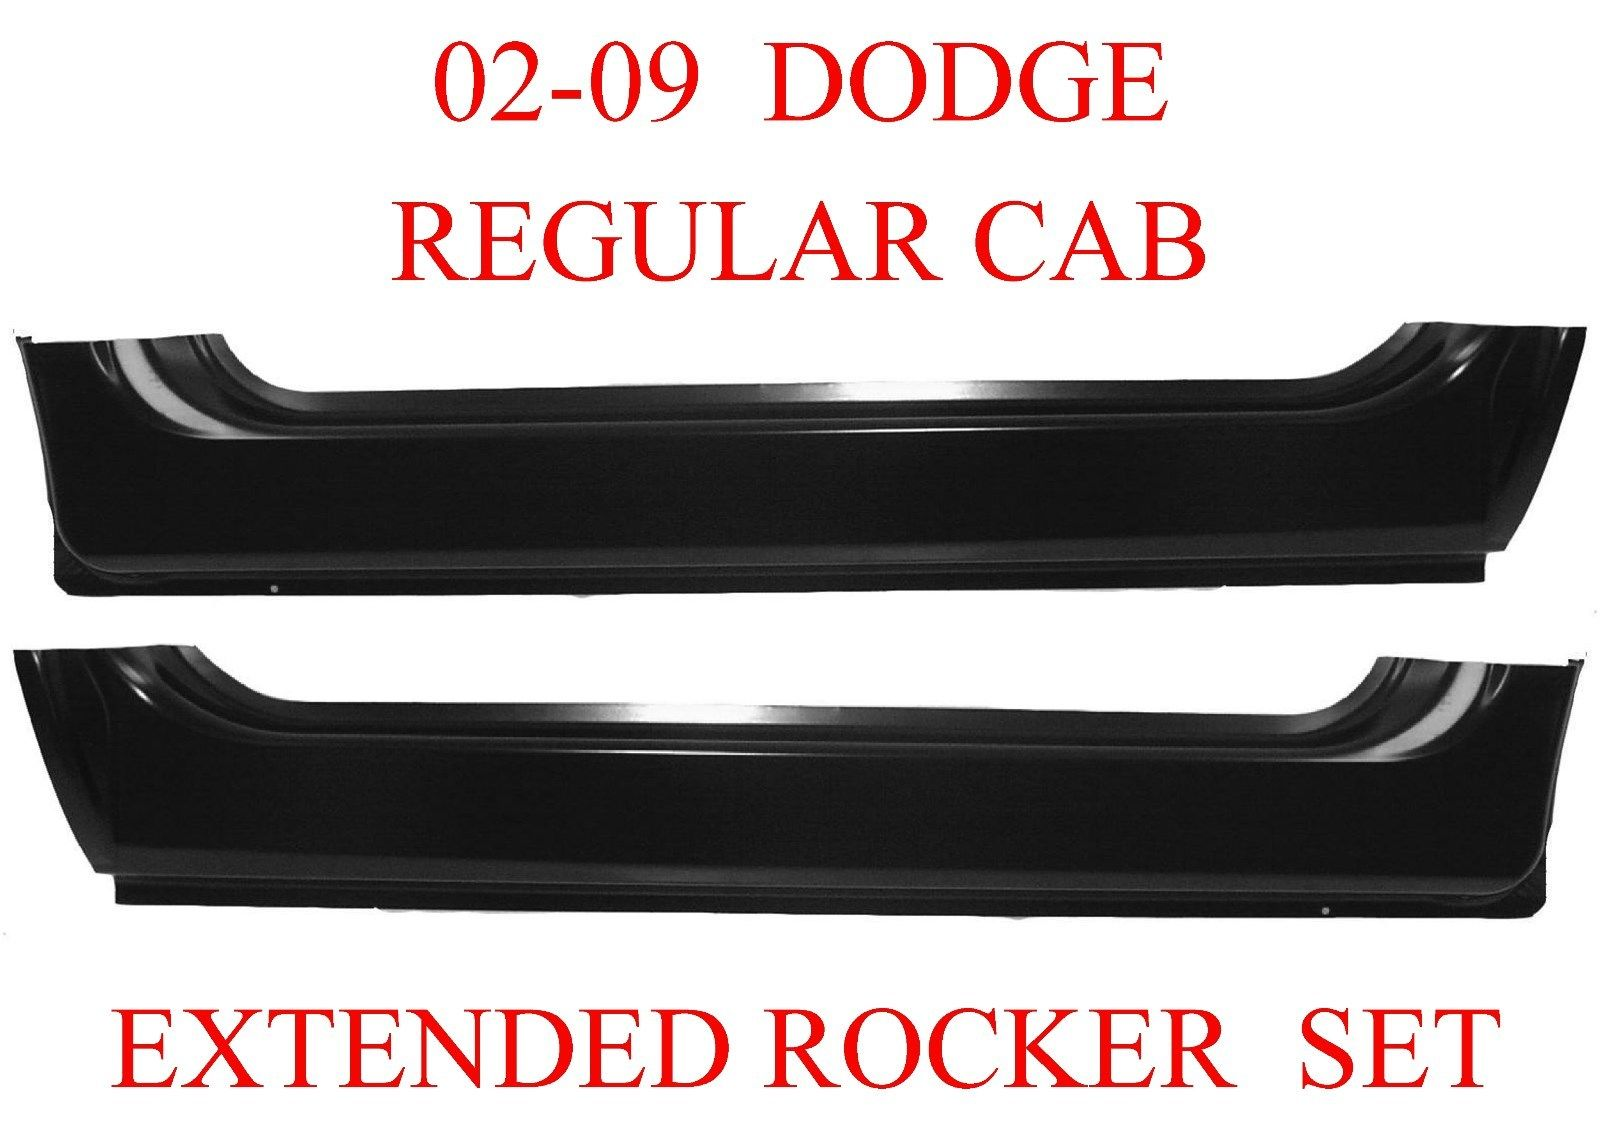 02-09 Dodge Extended Rocker Set Regular Cab